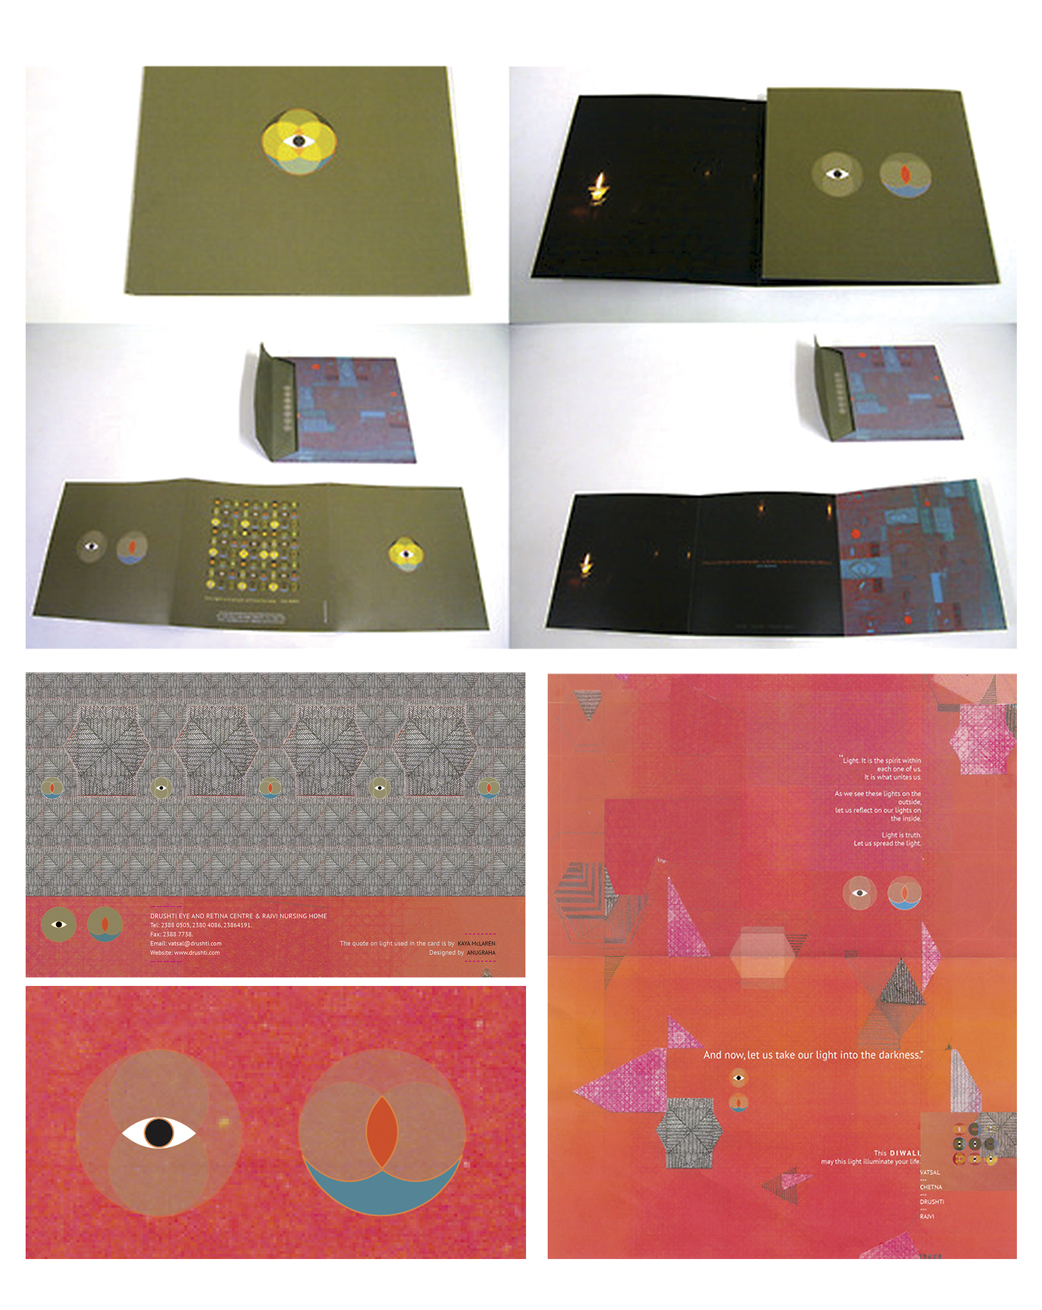 Design for Diwali cards for Drushti Eye and Retina Centre and Rajvi Nursing Home.